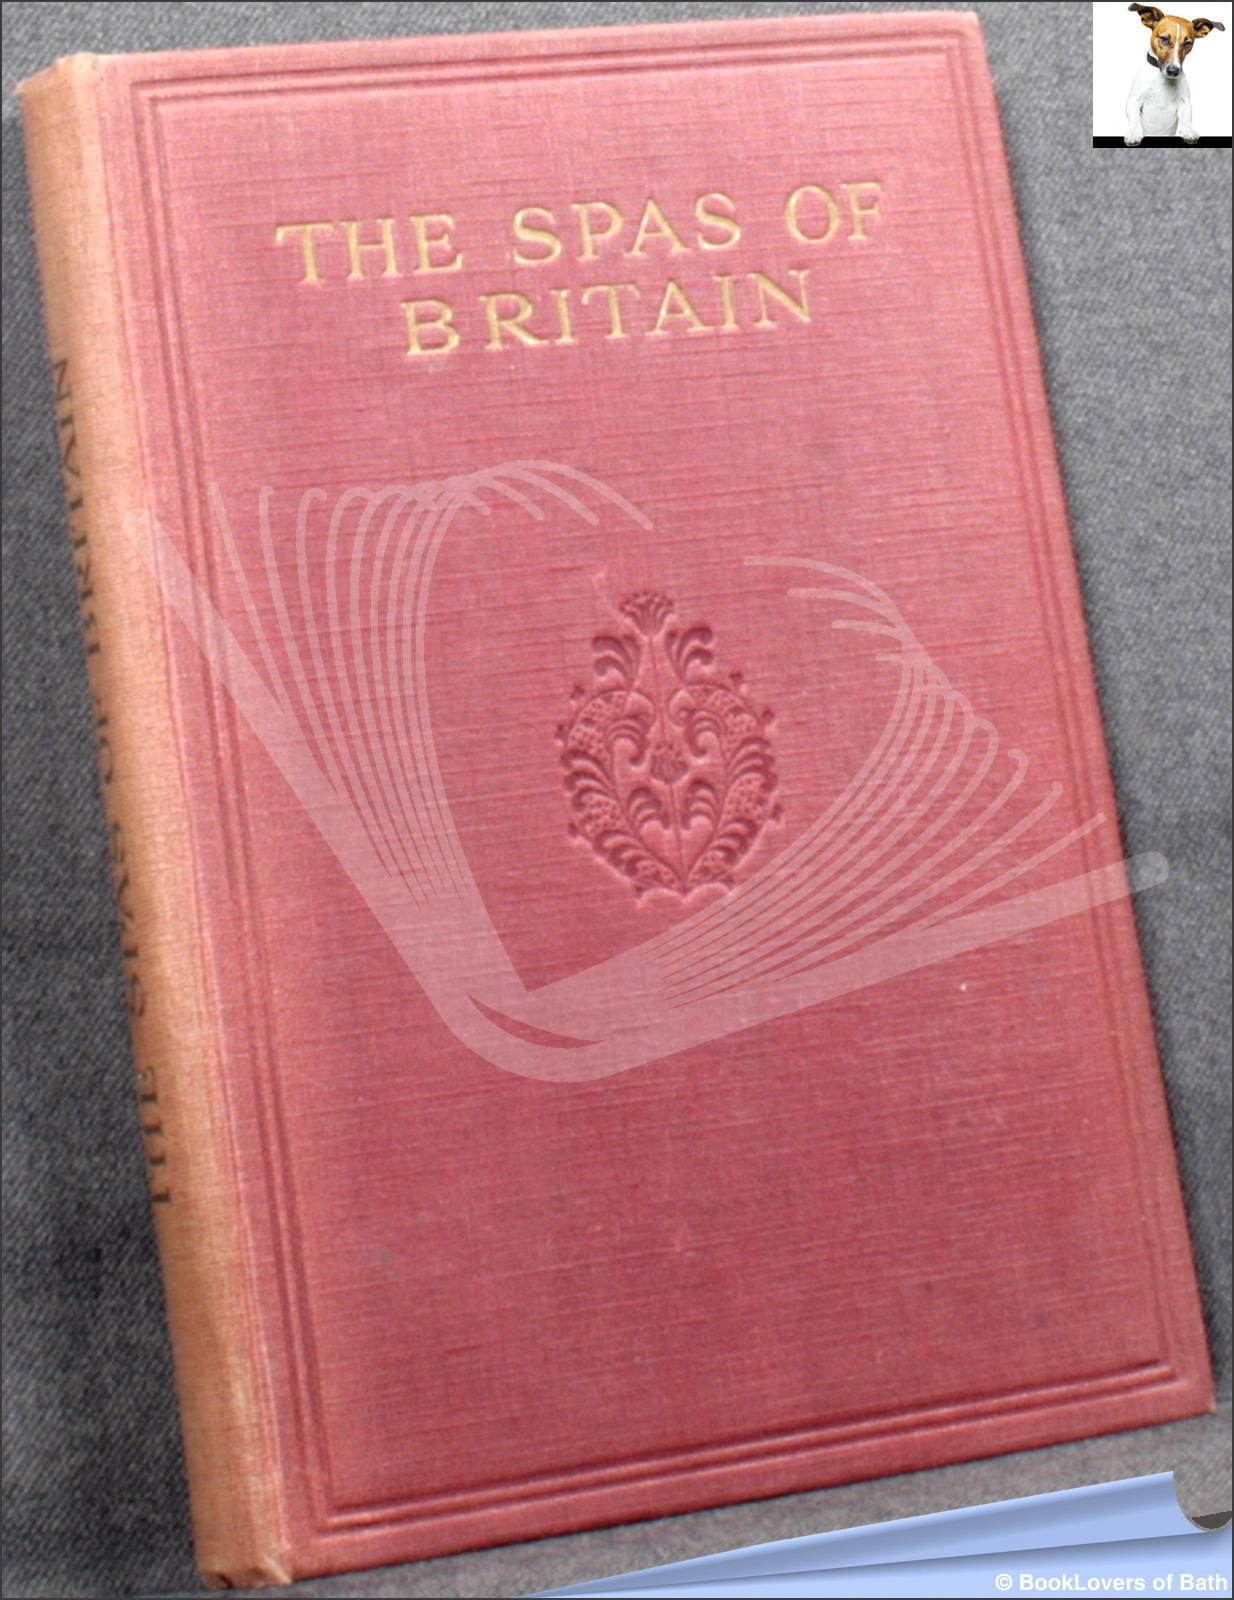 The Spas of Britain: The Official Handbook of the British Spa Federation Compiled from the Reports of the Local Medical Committees - Anon.